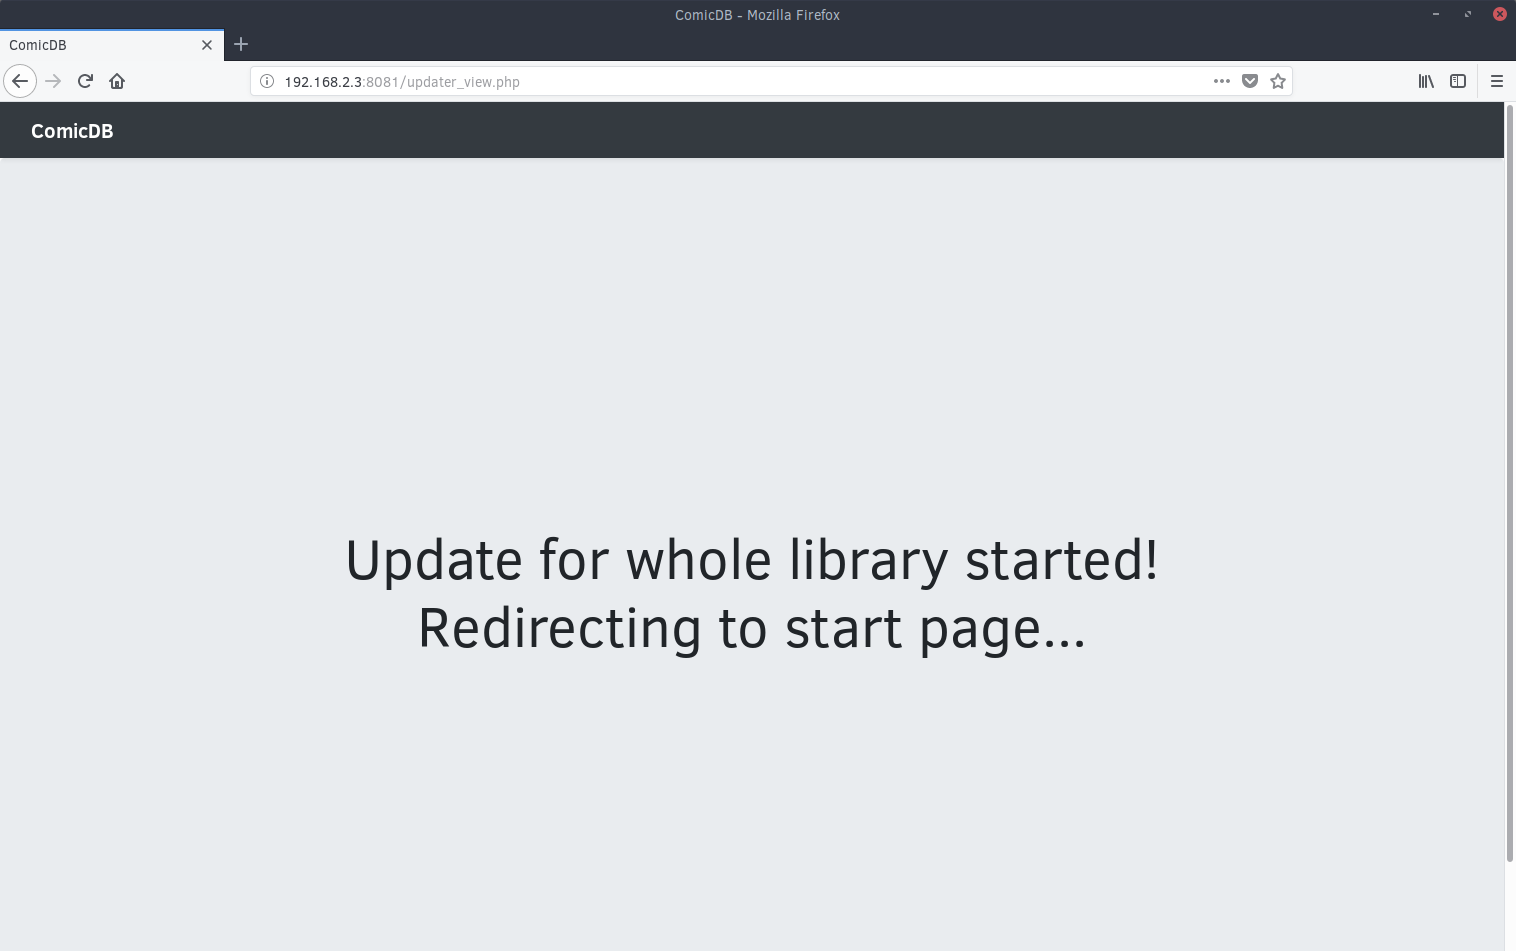 comicdb_updating_library